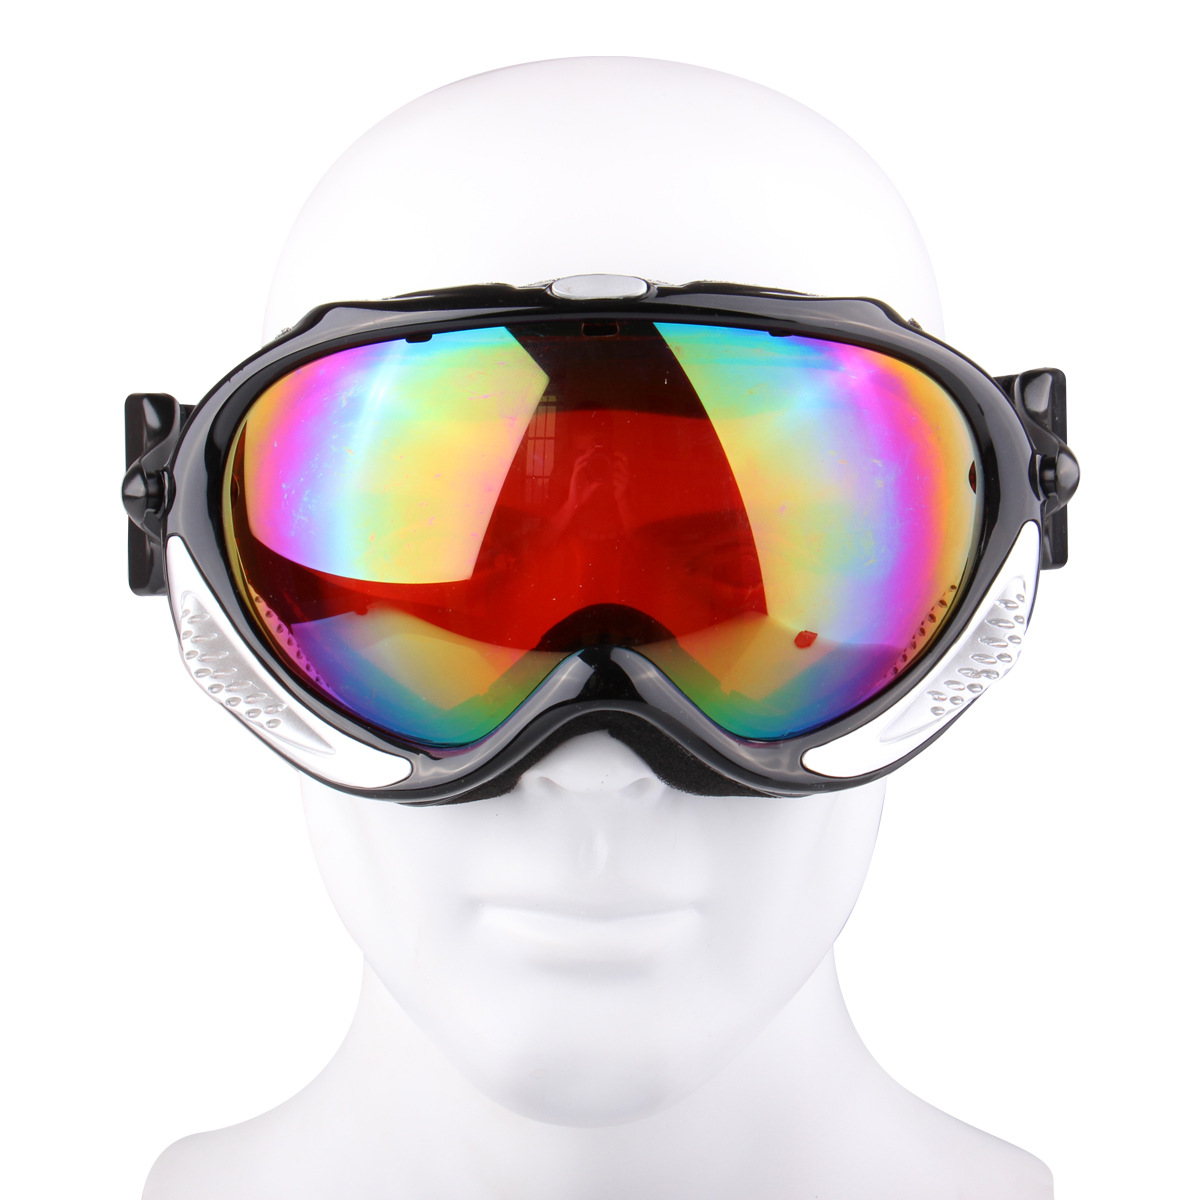 Mumian Sports Trend Rui Zhi Men And Women Ski Goggles Mountain Climbing Eye-protection Goggles S02